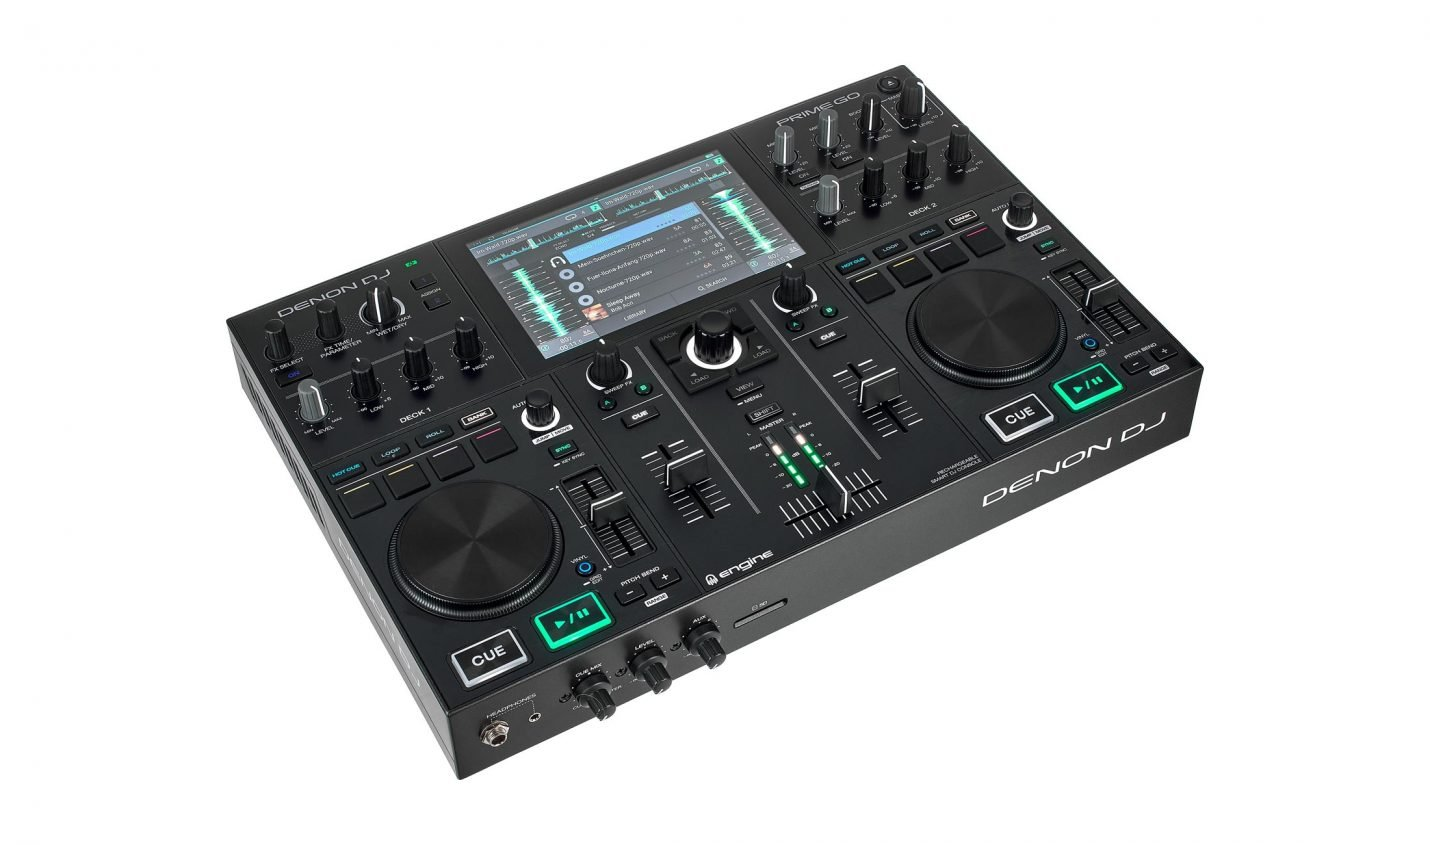 Test: Denon DJ Prime Go / Akkubetriebene DJ-Workstation